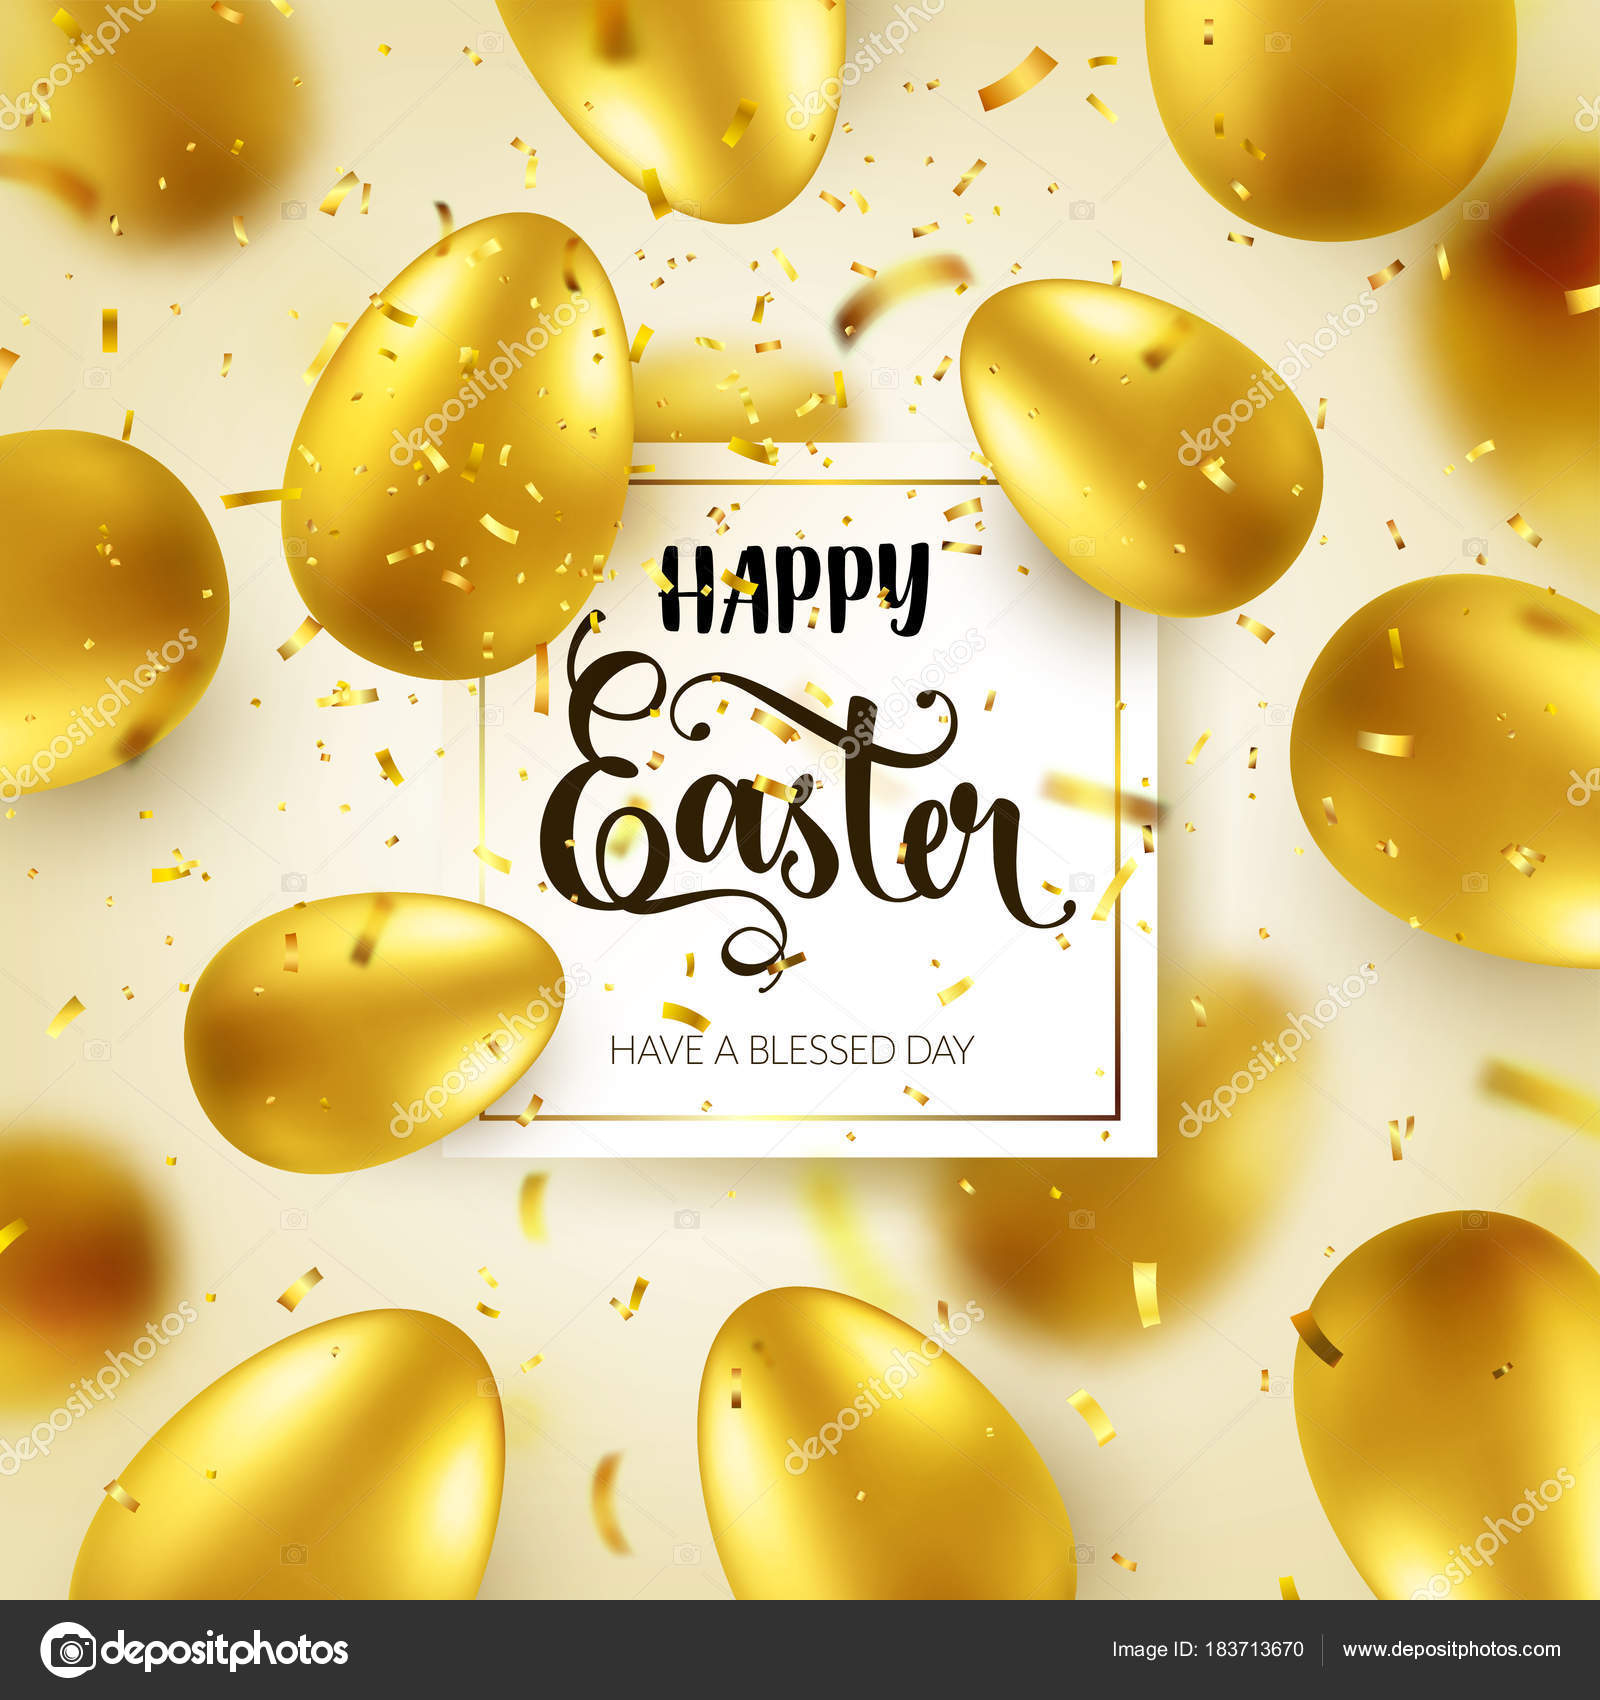 Easter Golden Egg With Calligraphic Lettering Greetings Confetti